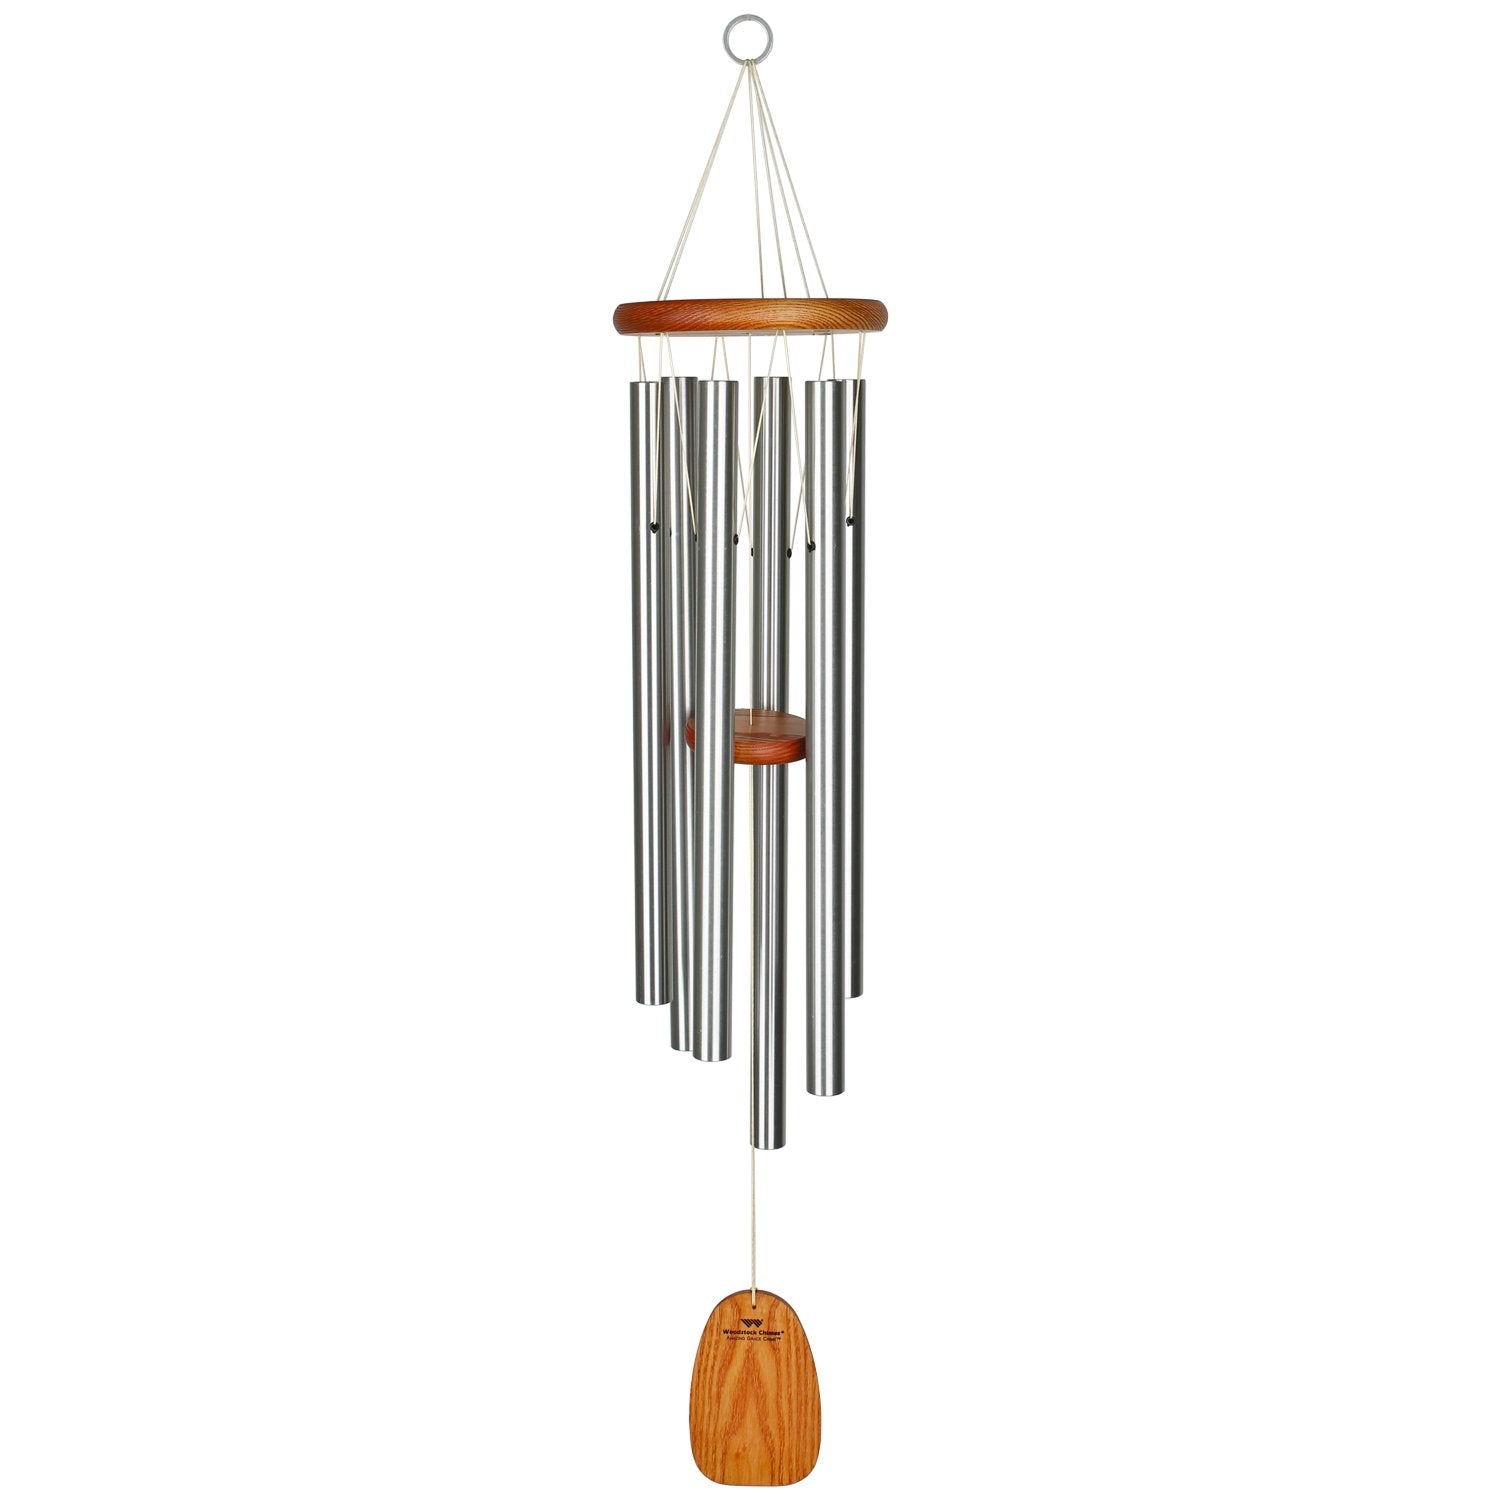 Amazing Grace Chime - Large, Silver full product image